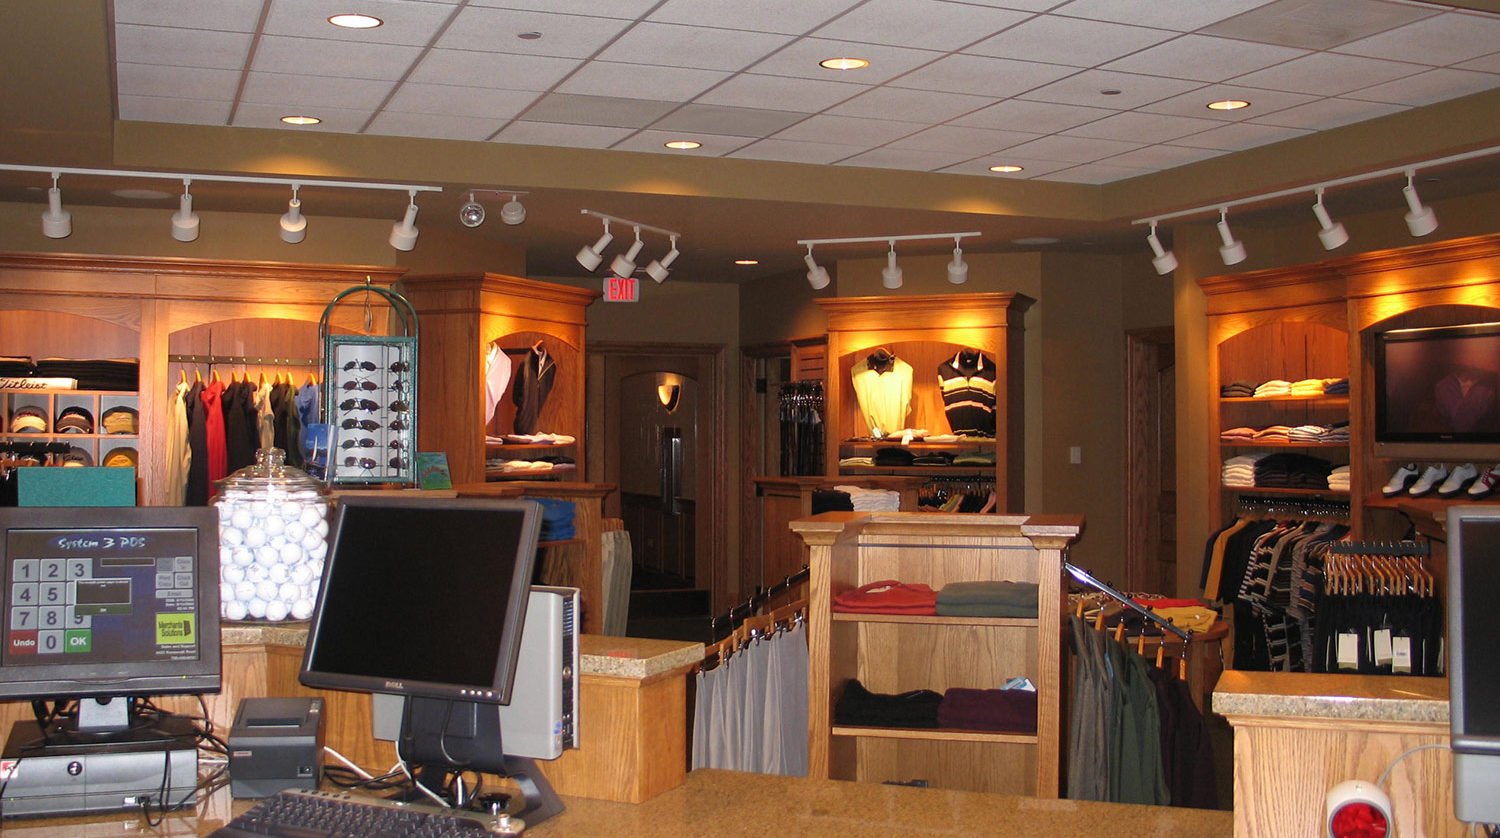 Wilmette Park District Golf Clubhouse shop